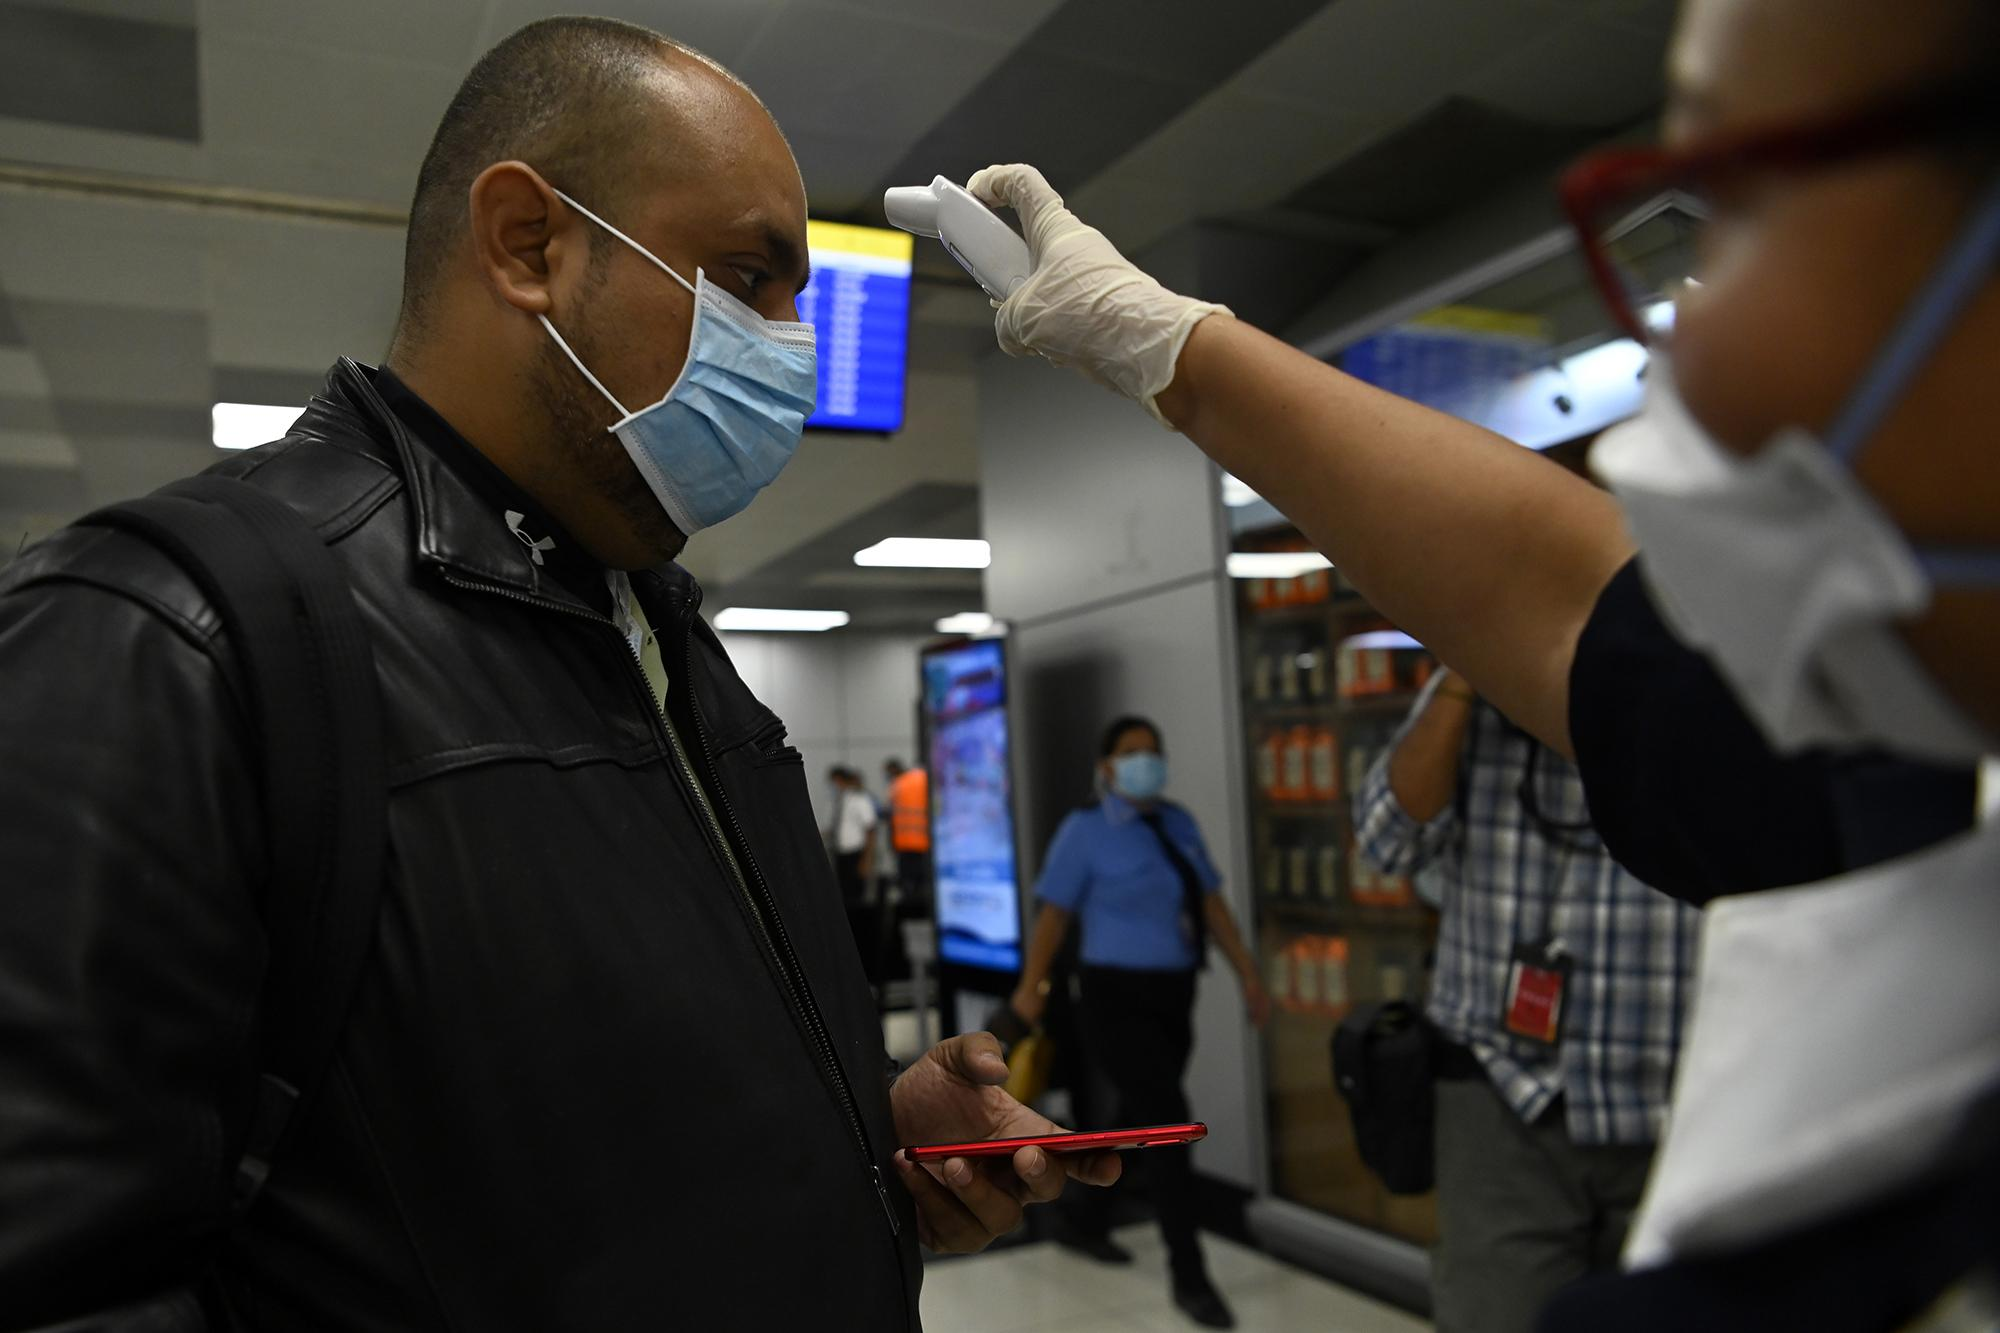 A passenger at El Salvador's international airport gets his temperature checked while wearing a mask to protect against the coronavirus on March 12, 2020. Photo by Marvin Recinos/AFP